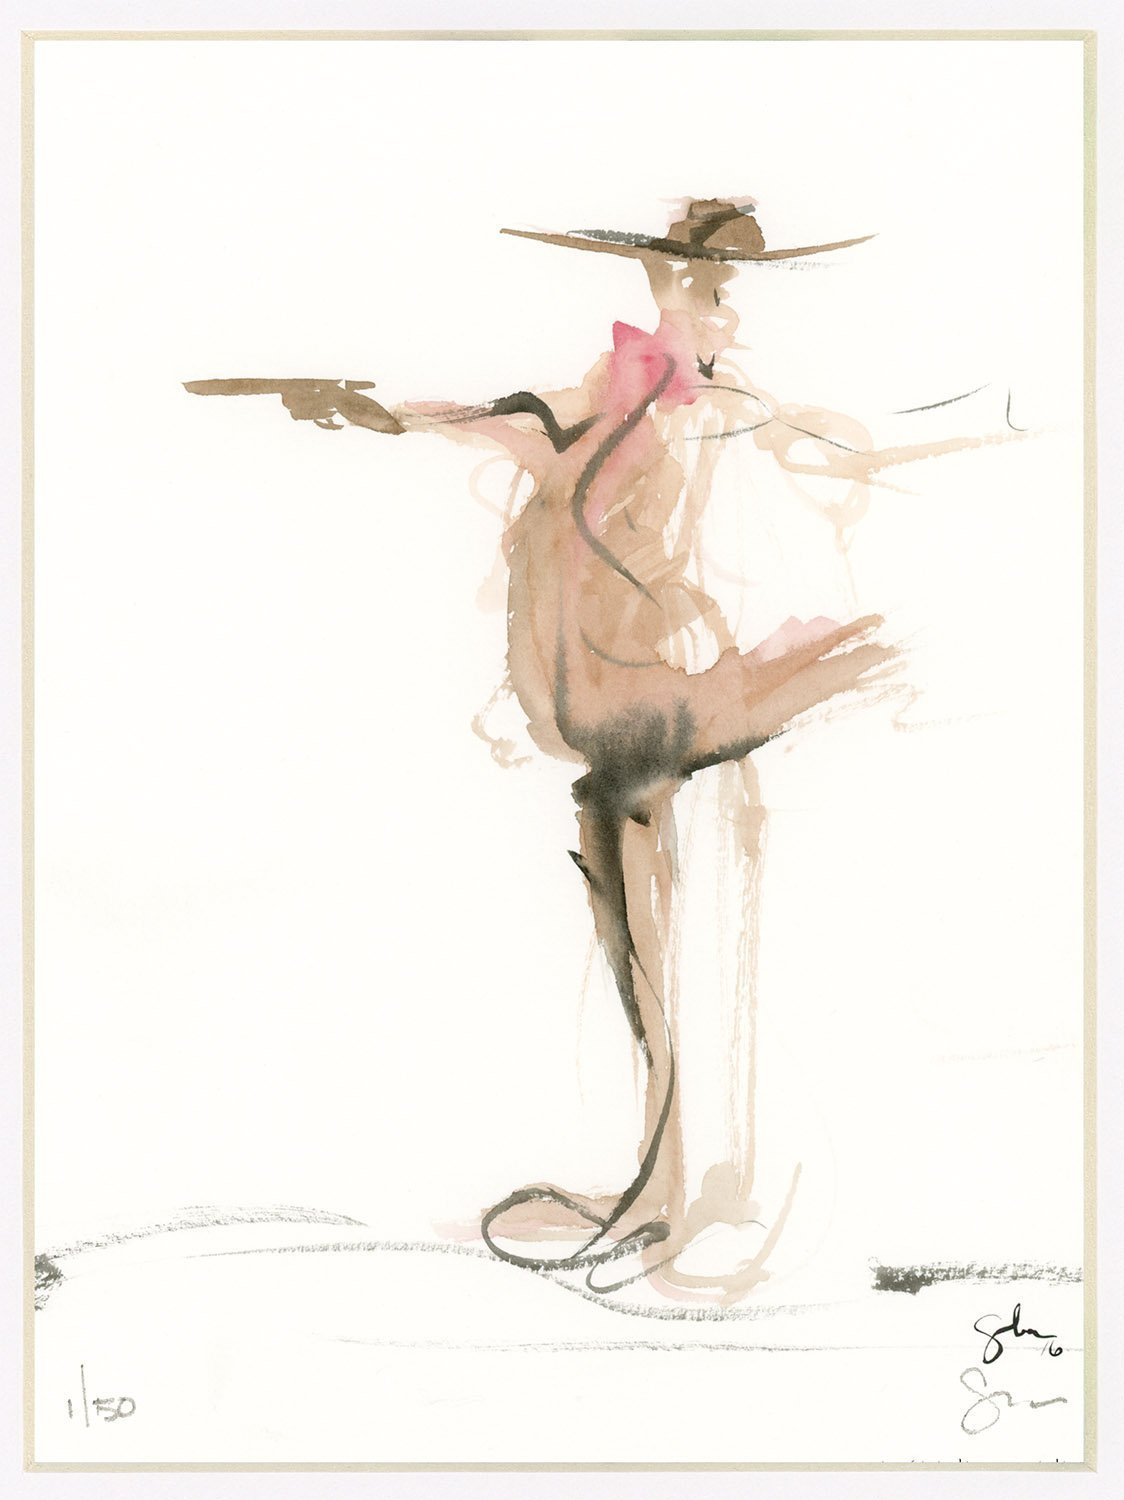 Limited edition Signed Print from original watercolor painting figure